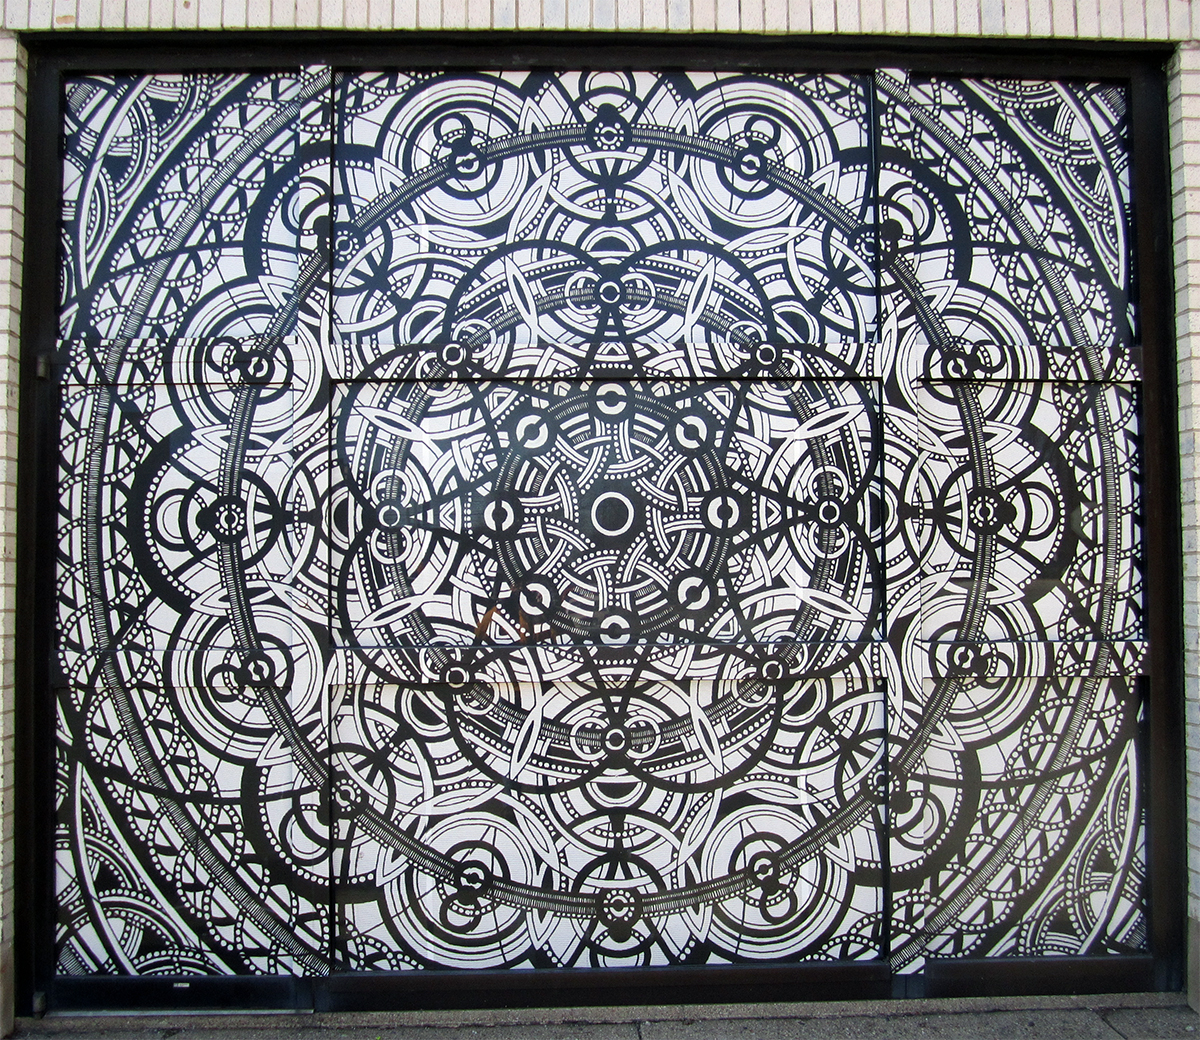 February 11th. Mosaic Near the Library.